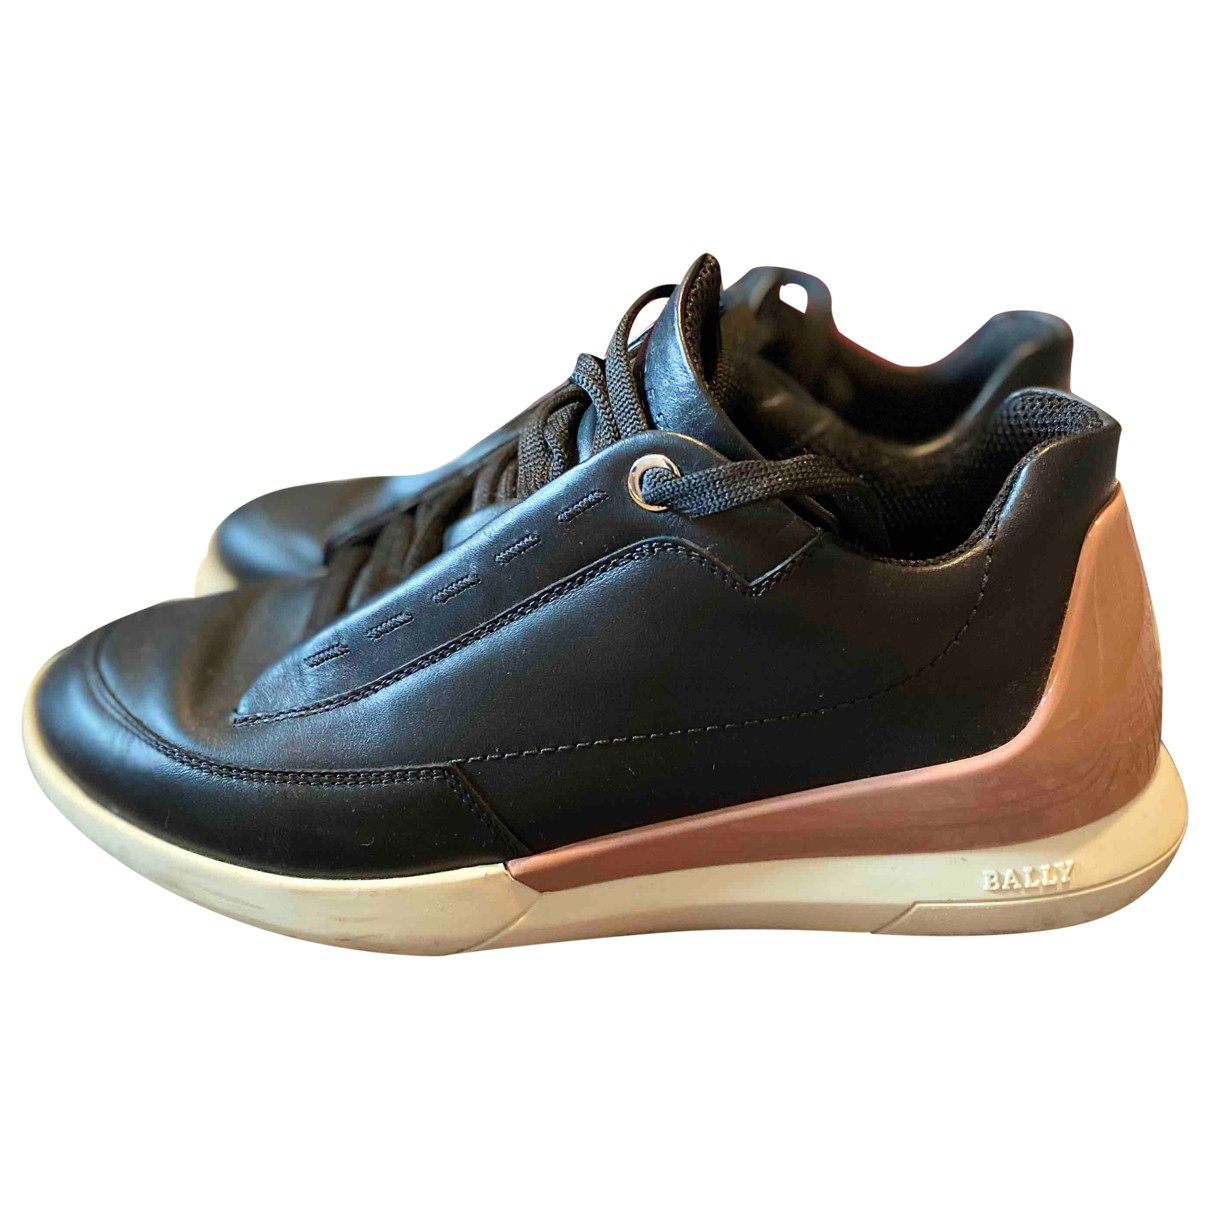 Bally N Black Leather Trainers for Women 36 EU